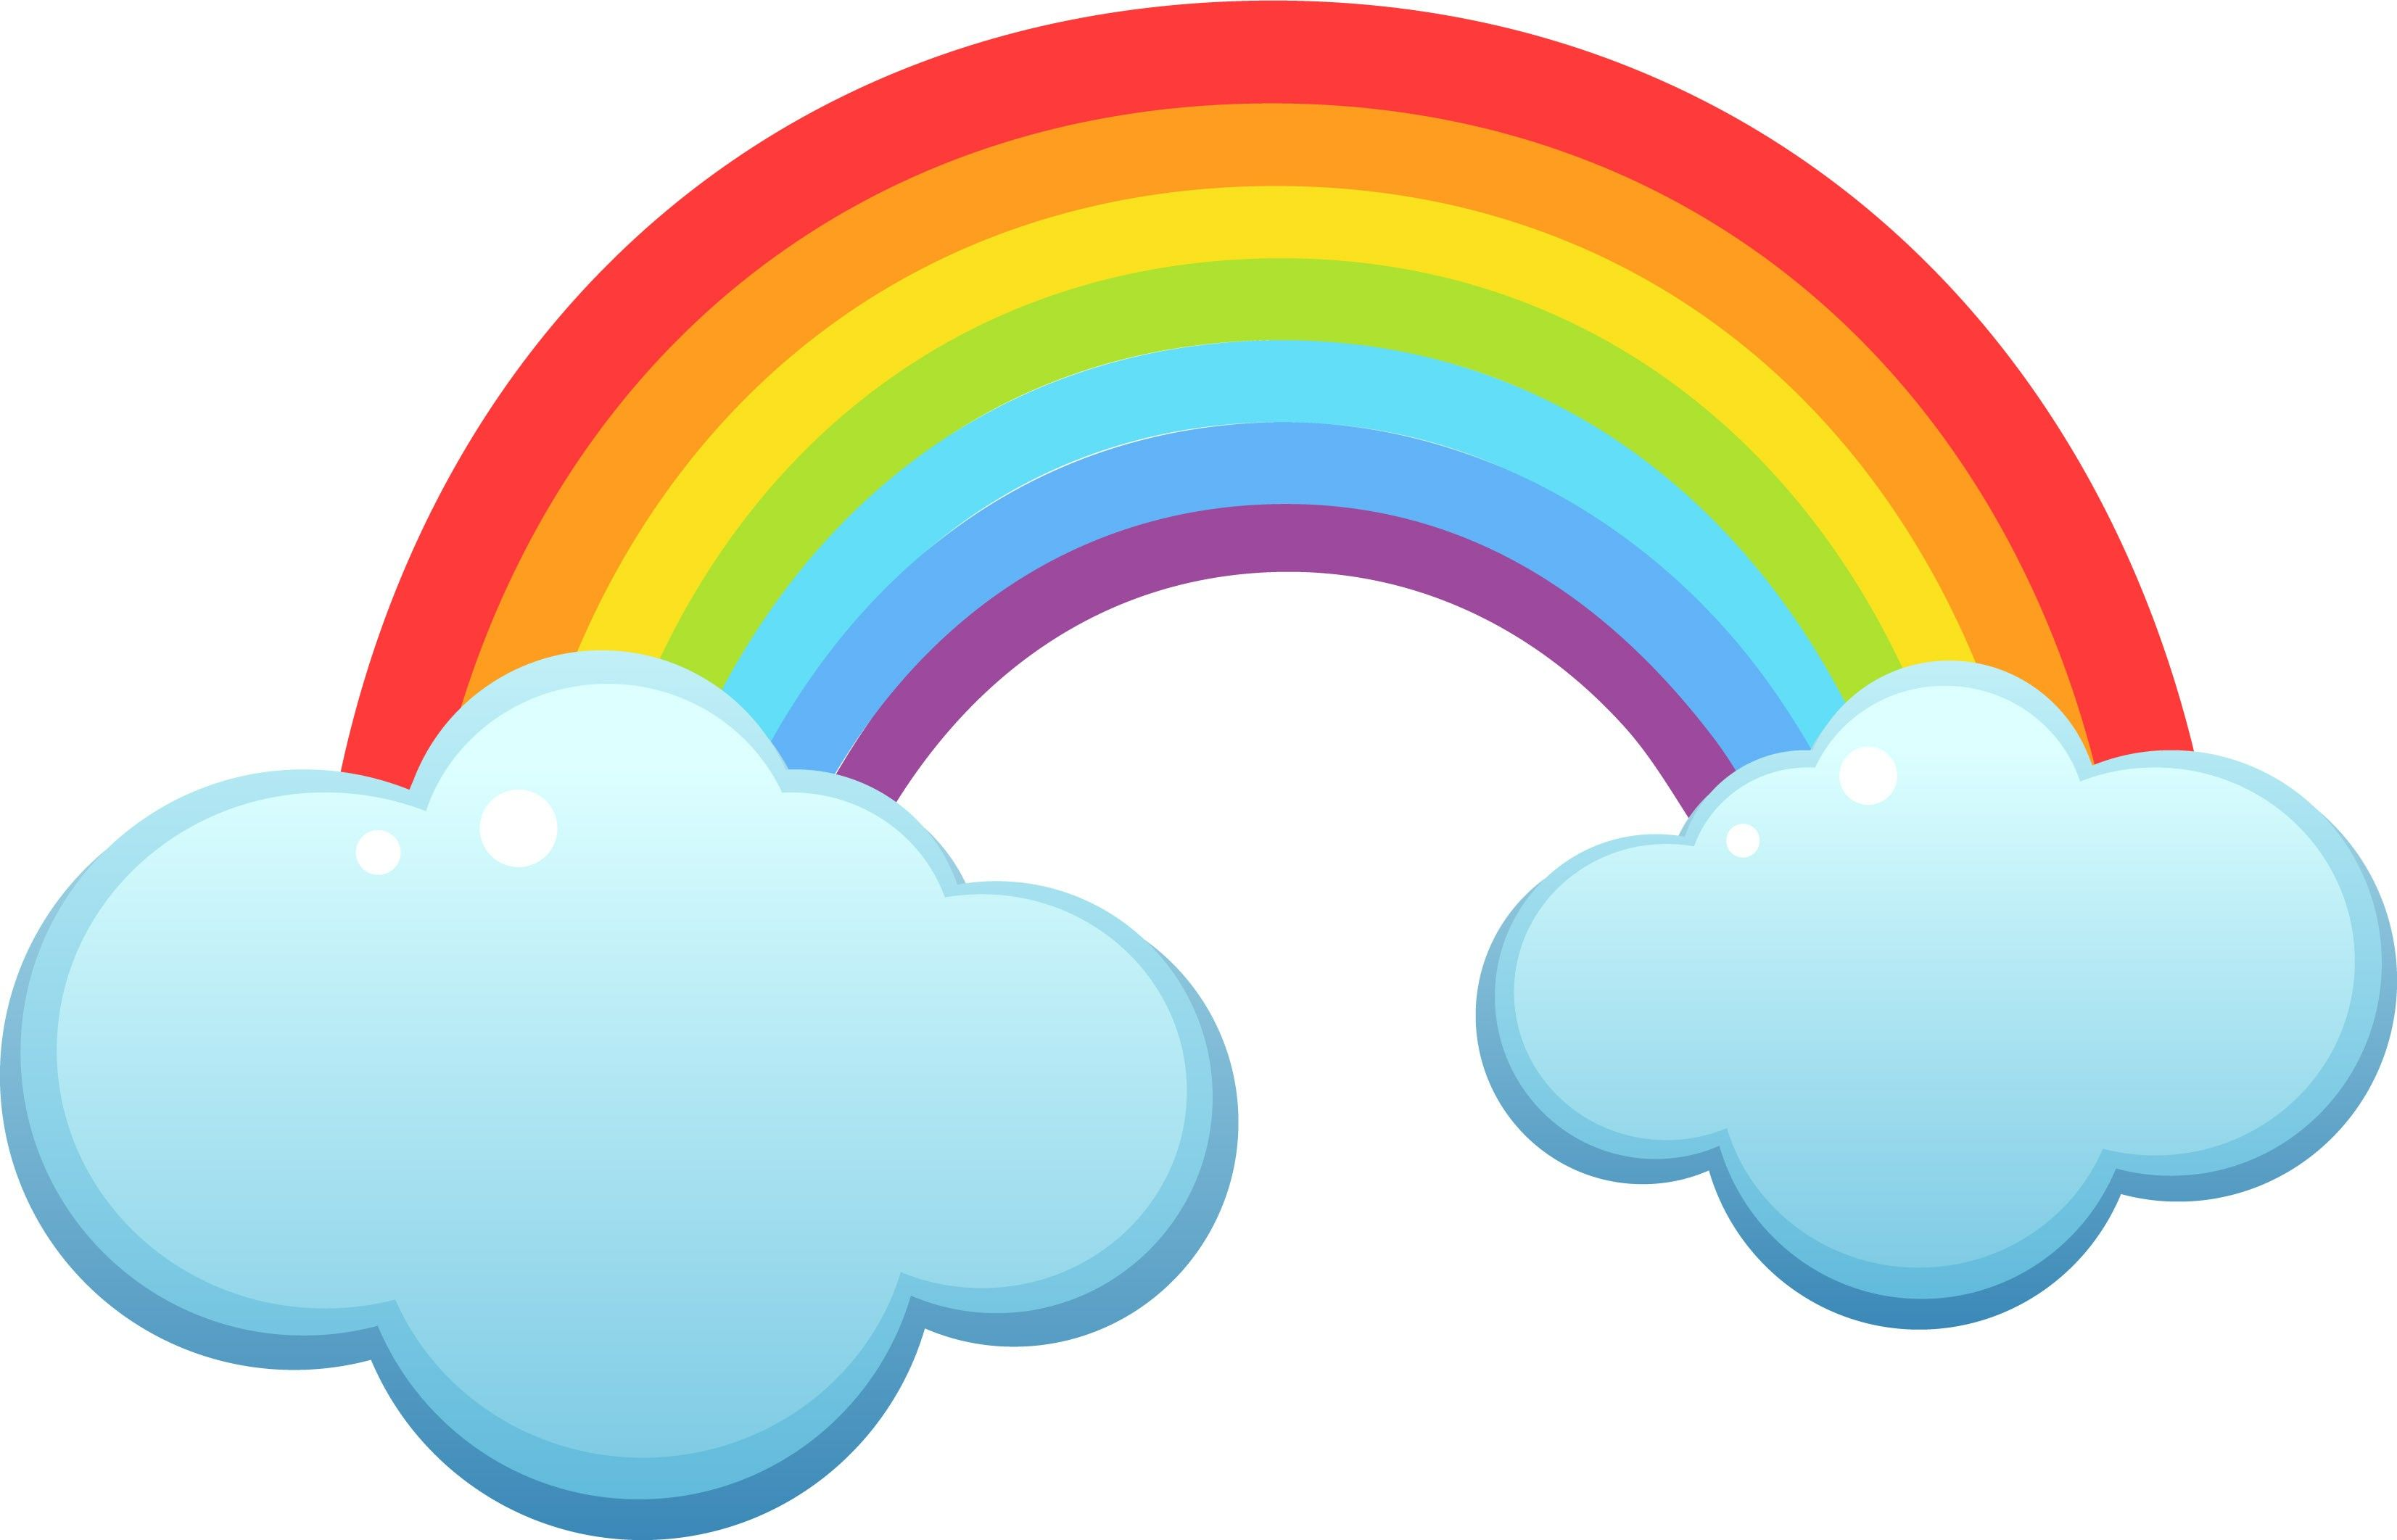 cute rainbow illustration google search clipart pinterest rh pinterest co uk rainbow clipart vector rainbow clipart vector